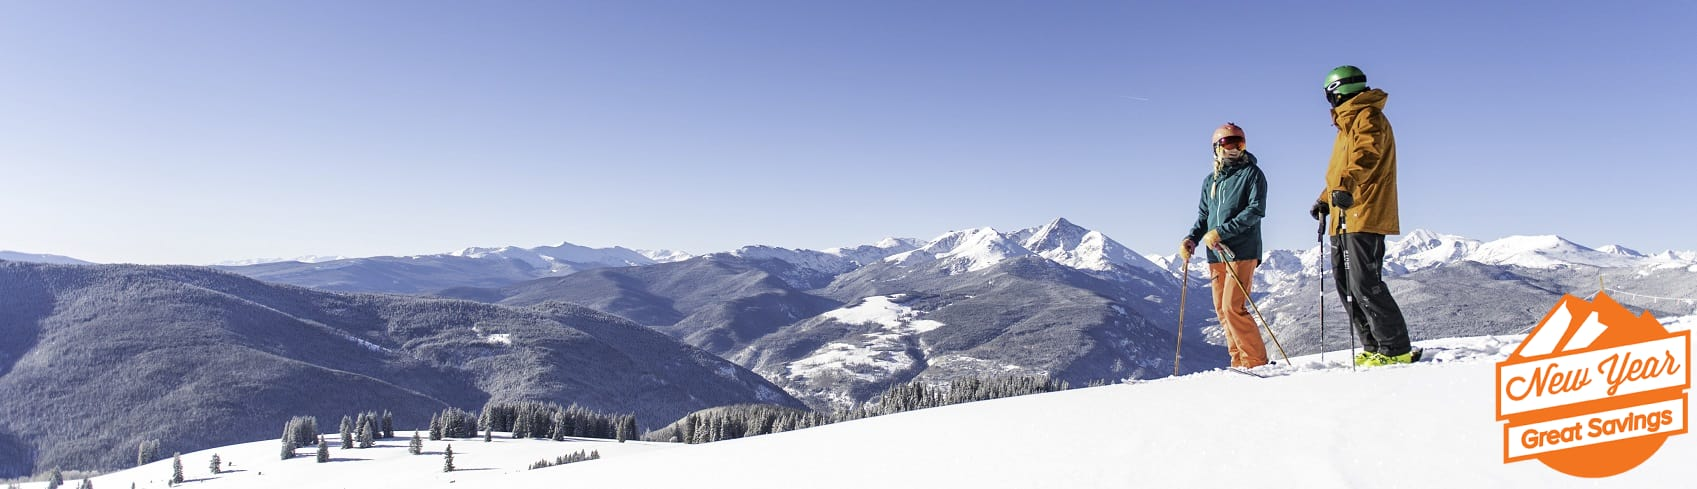 Couple Skiing on Vail Mountain